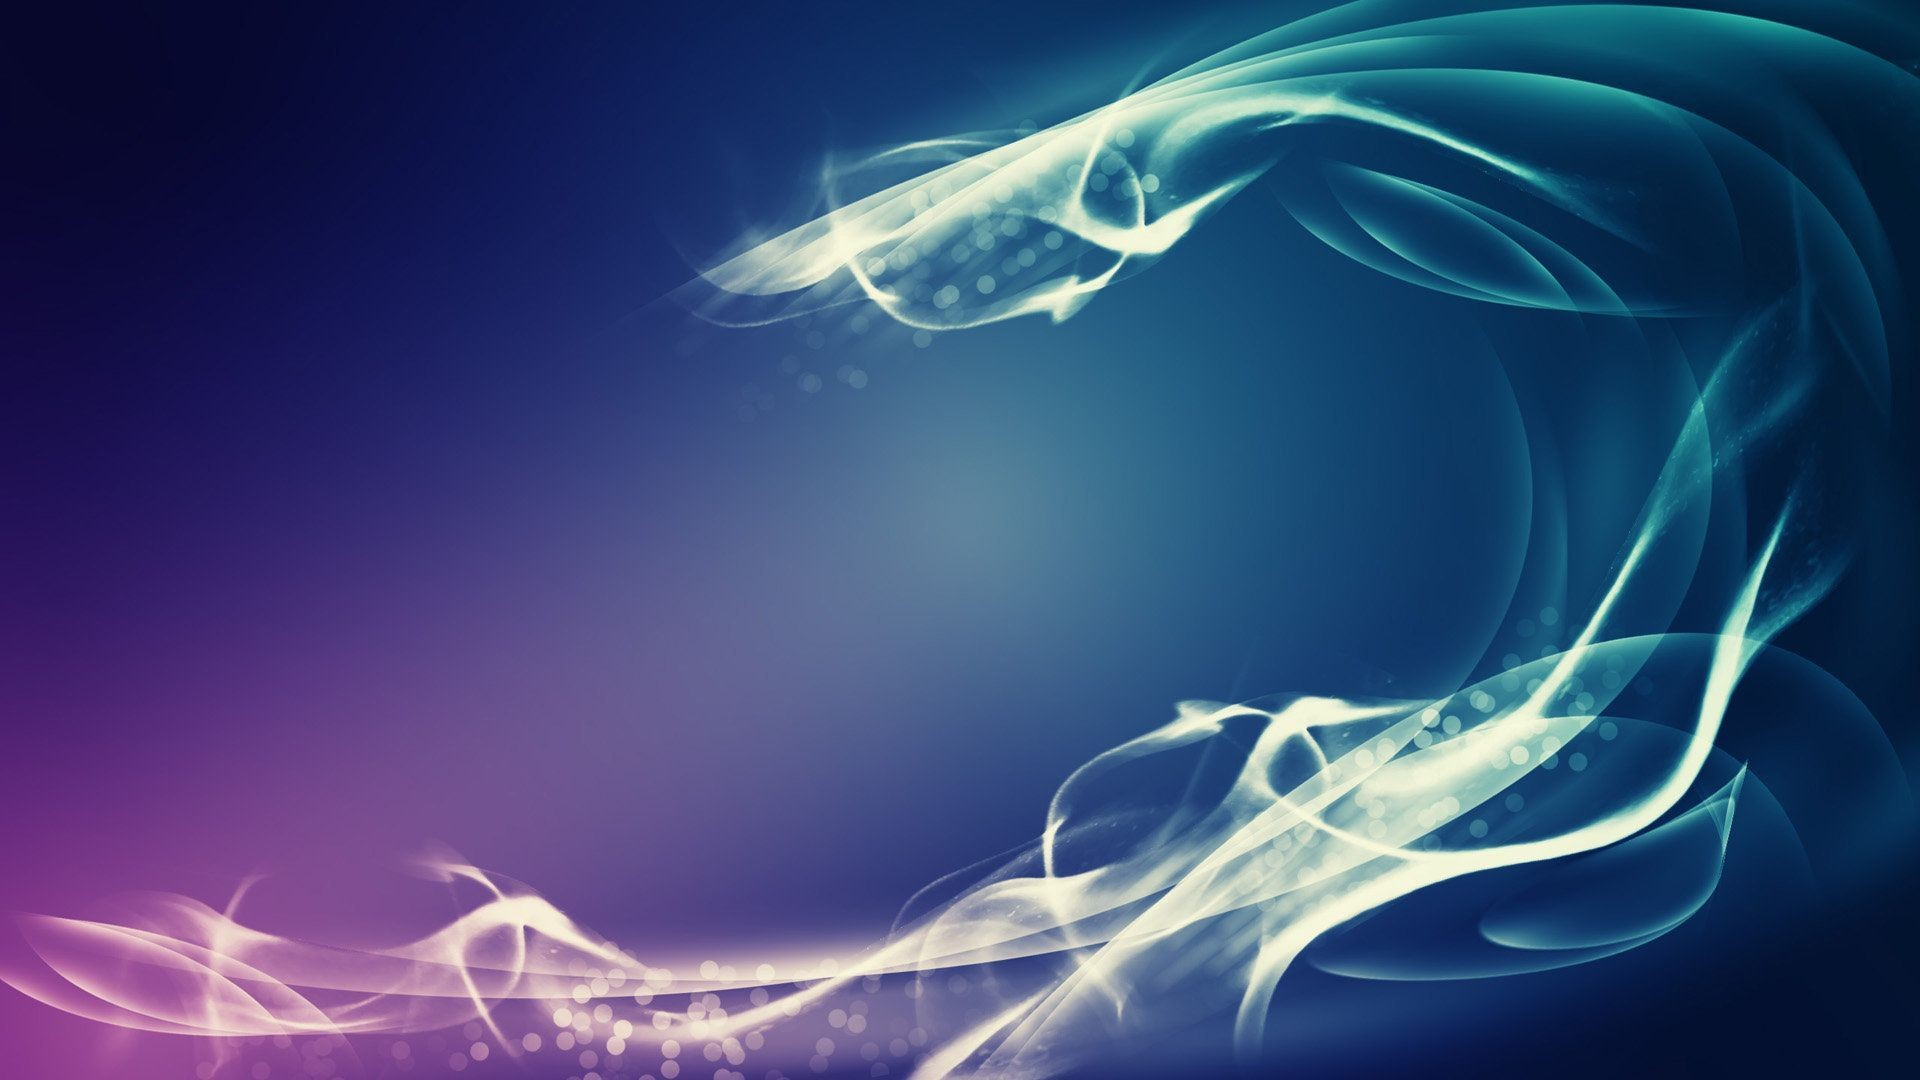 Res: 1920x1080, Blue Abstract Images For Free Wallpaper